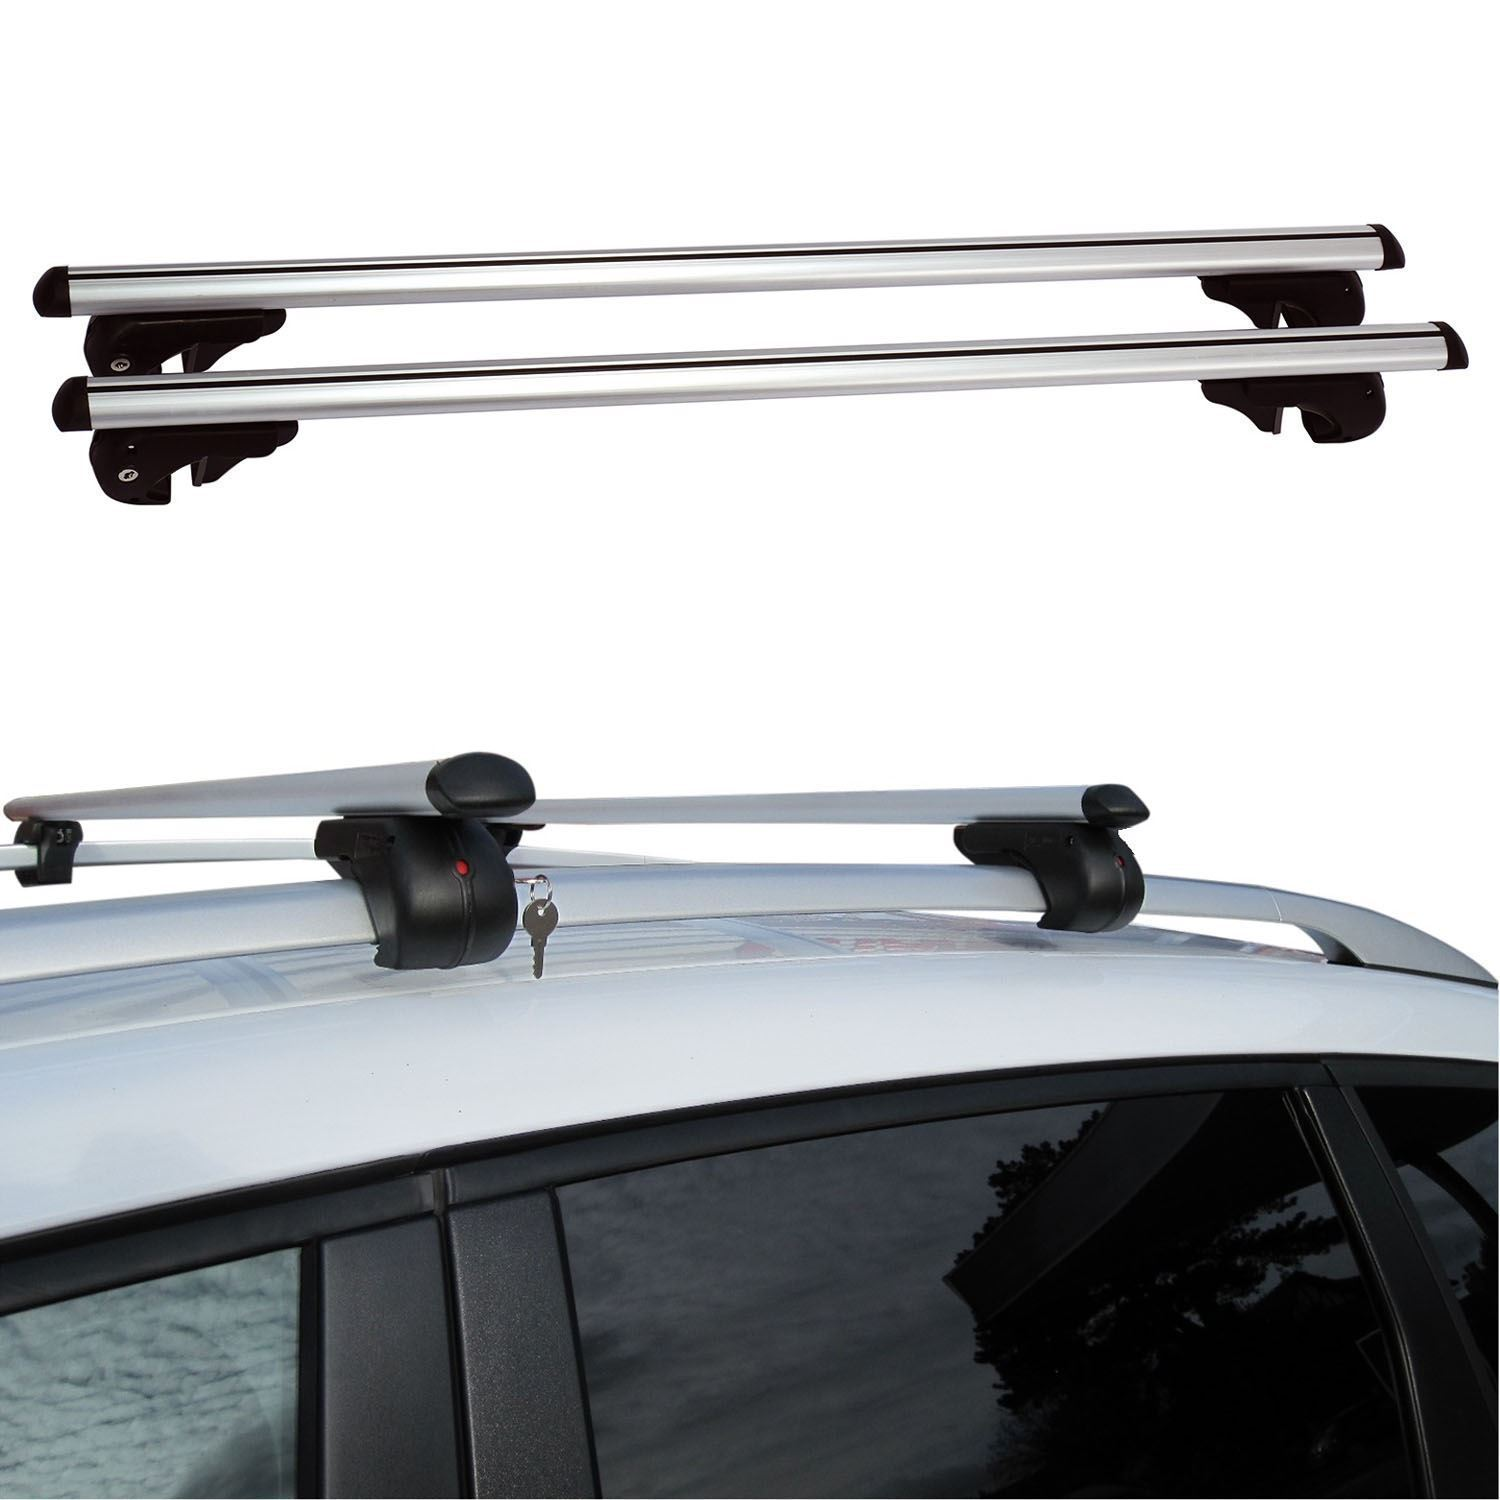 Adjustable 135cm Universal Aluminium Car Roof Bar Rack